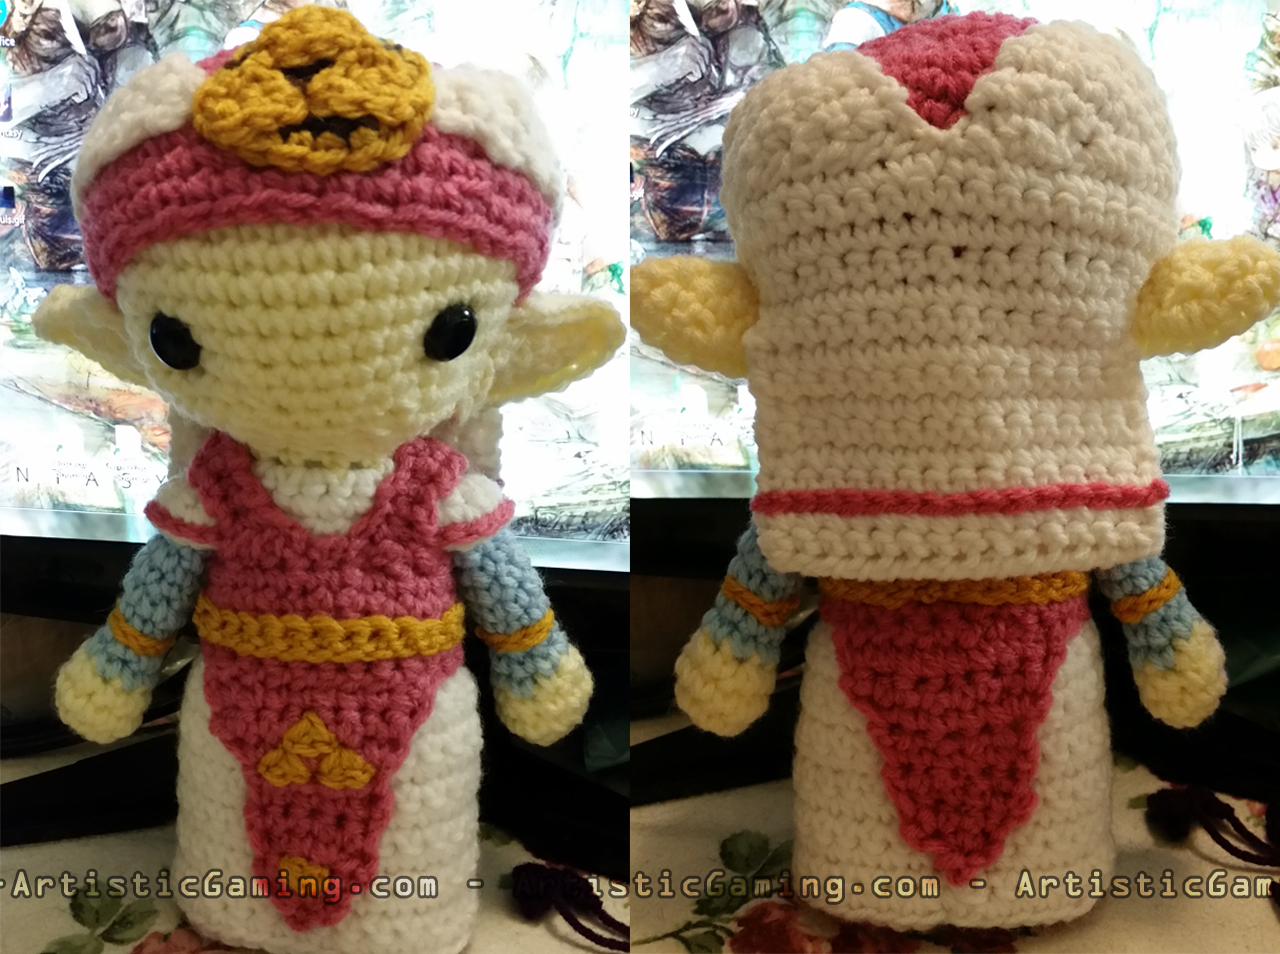 Amigurumi Zelda Pattern : Young zelda legend of zelda free crochet pattern u artisticgaming